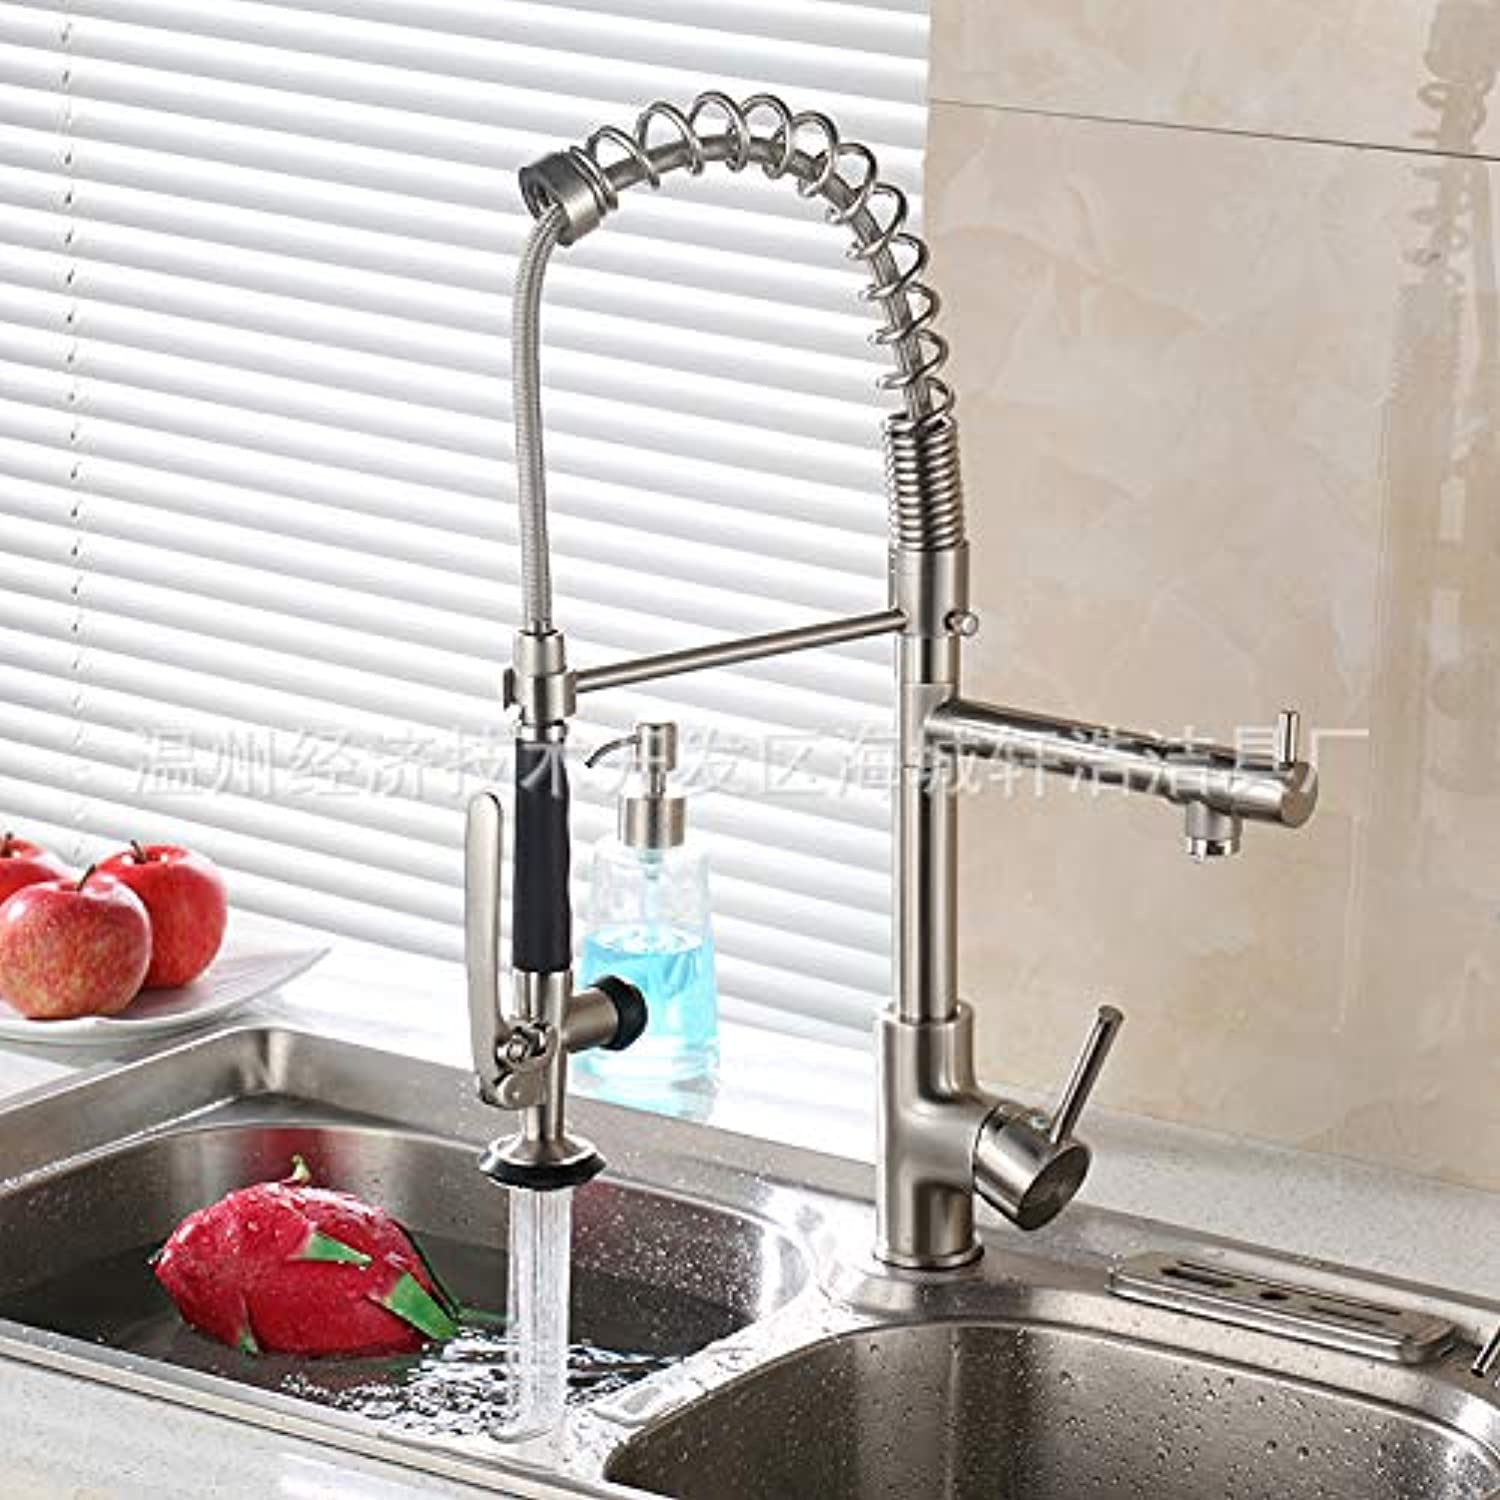 redOOY Taps Faucet Multi-Function Kitchen Faucet Brushed Spring Faucet Hot And Cold Water Kitchen Pull Faucet